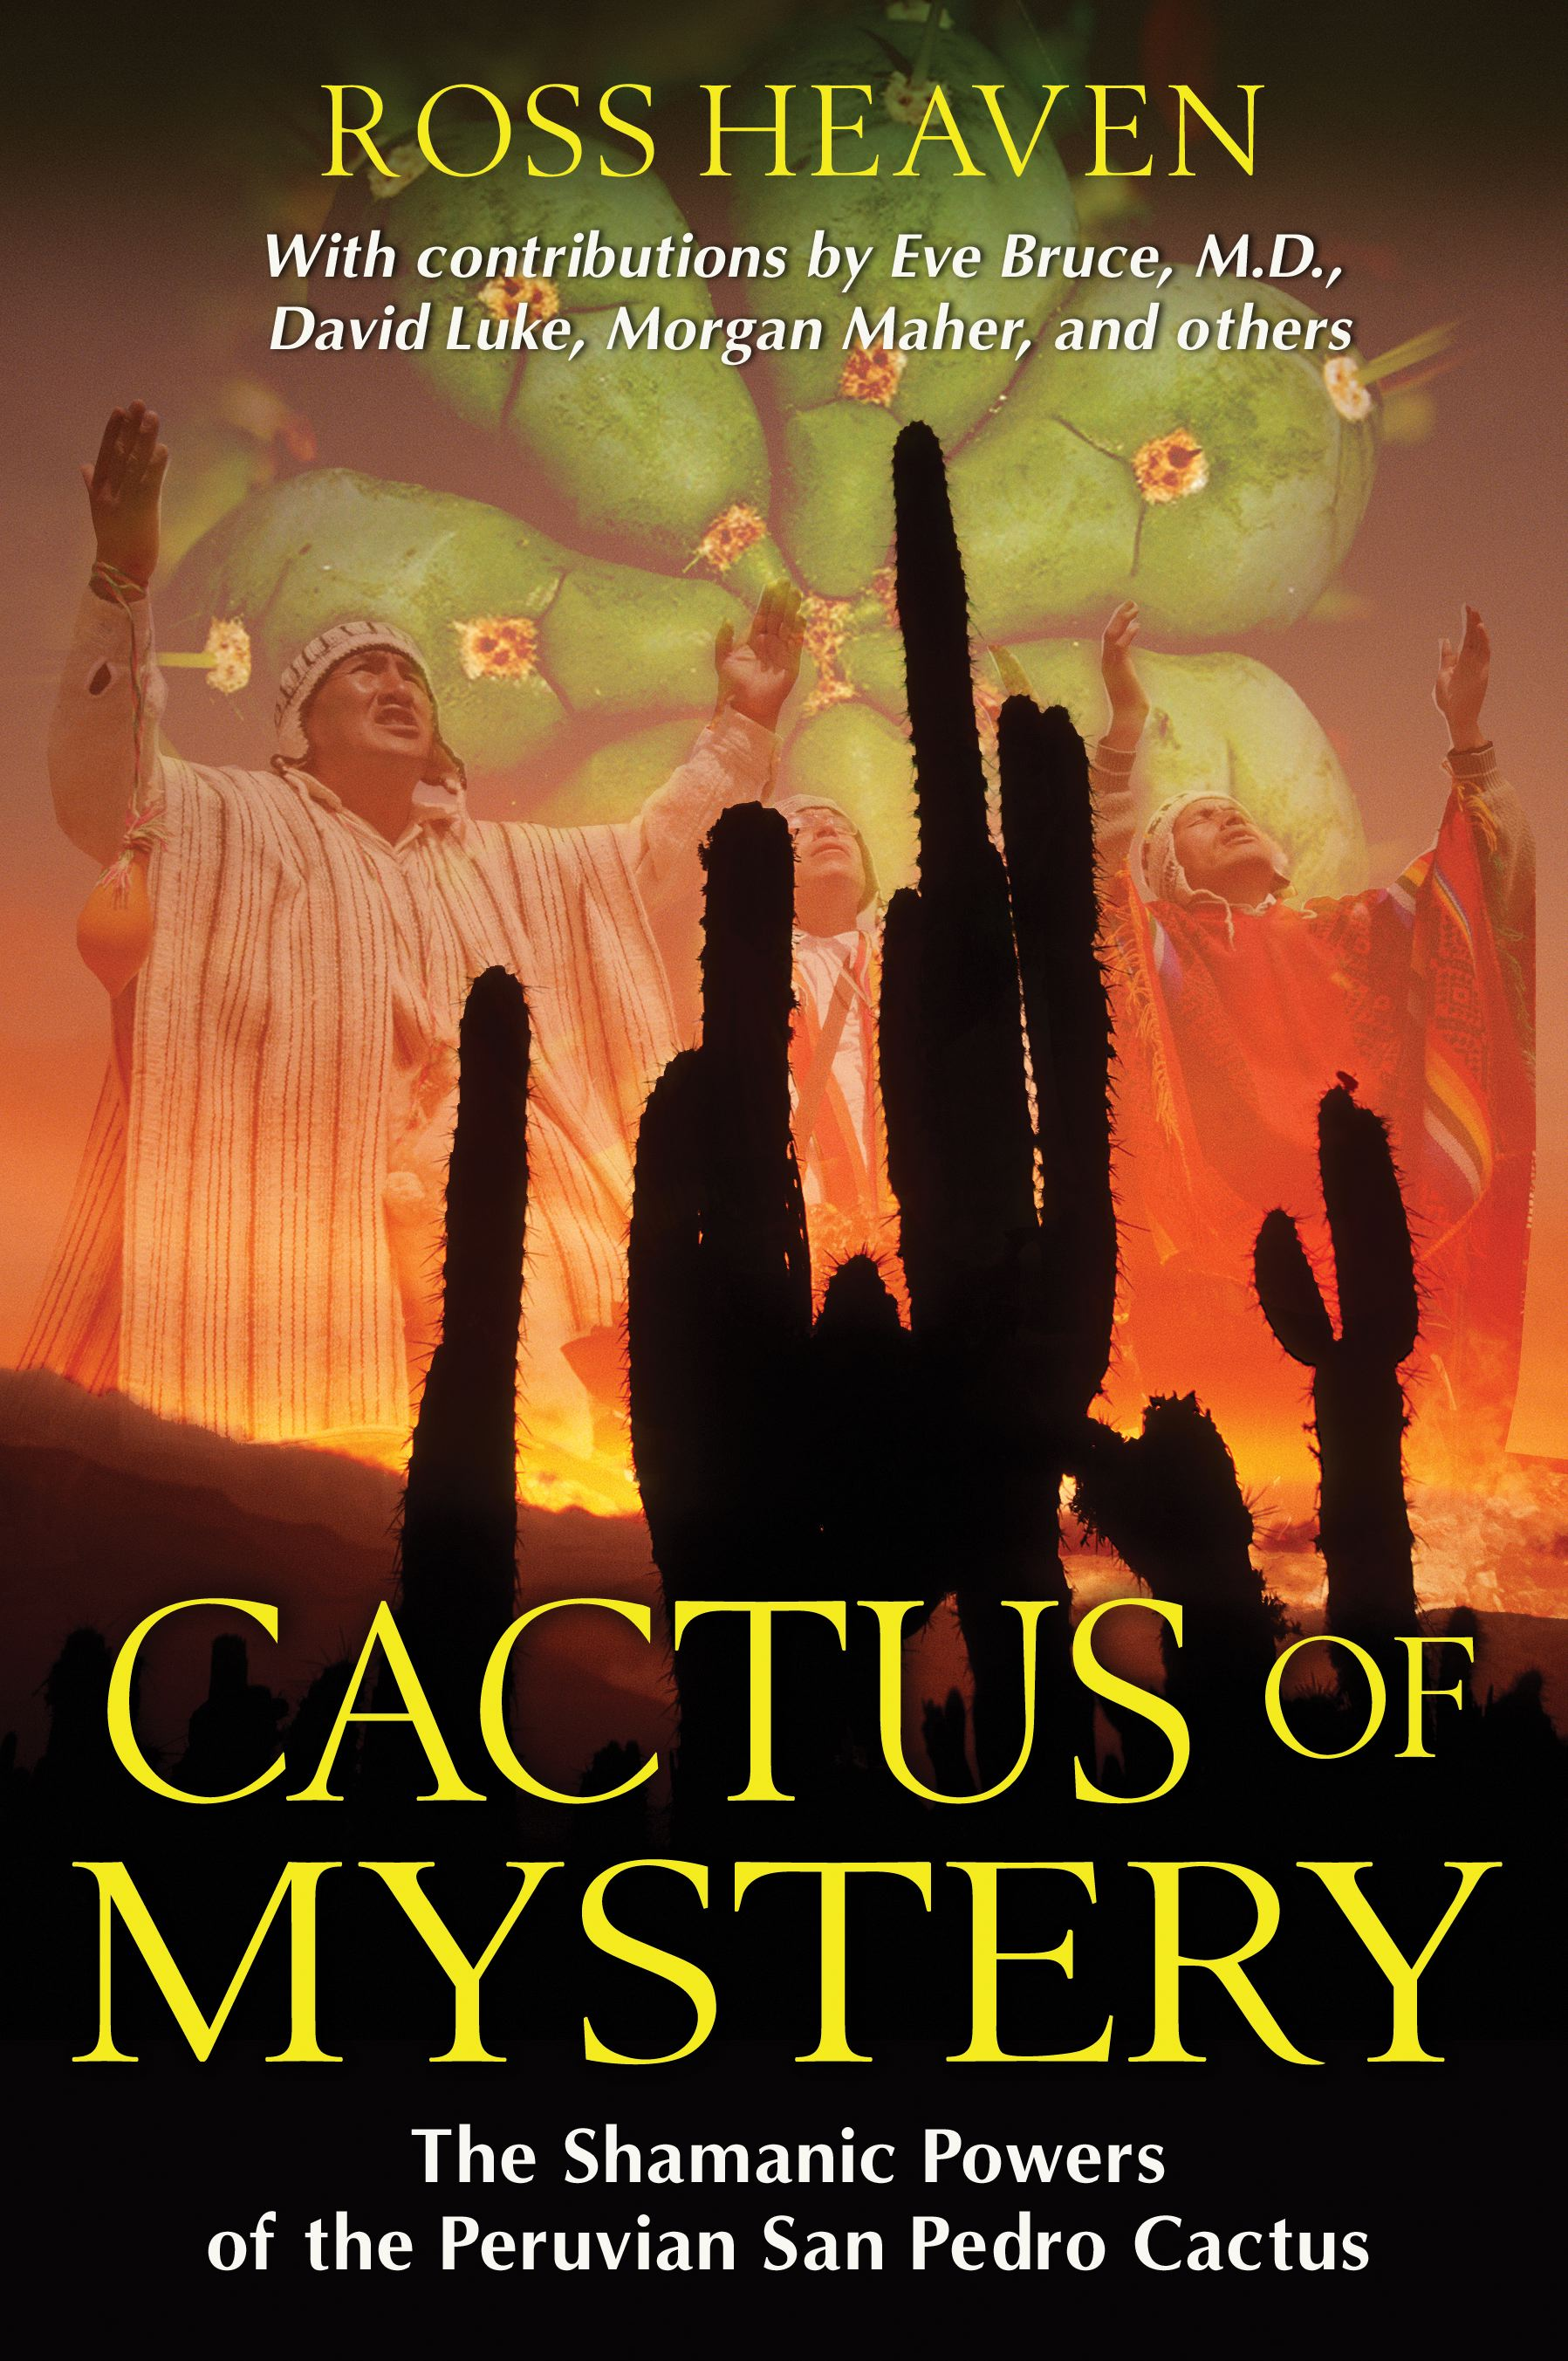 Cactus of mystery 9781594774911 hr